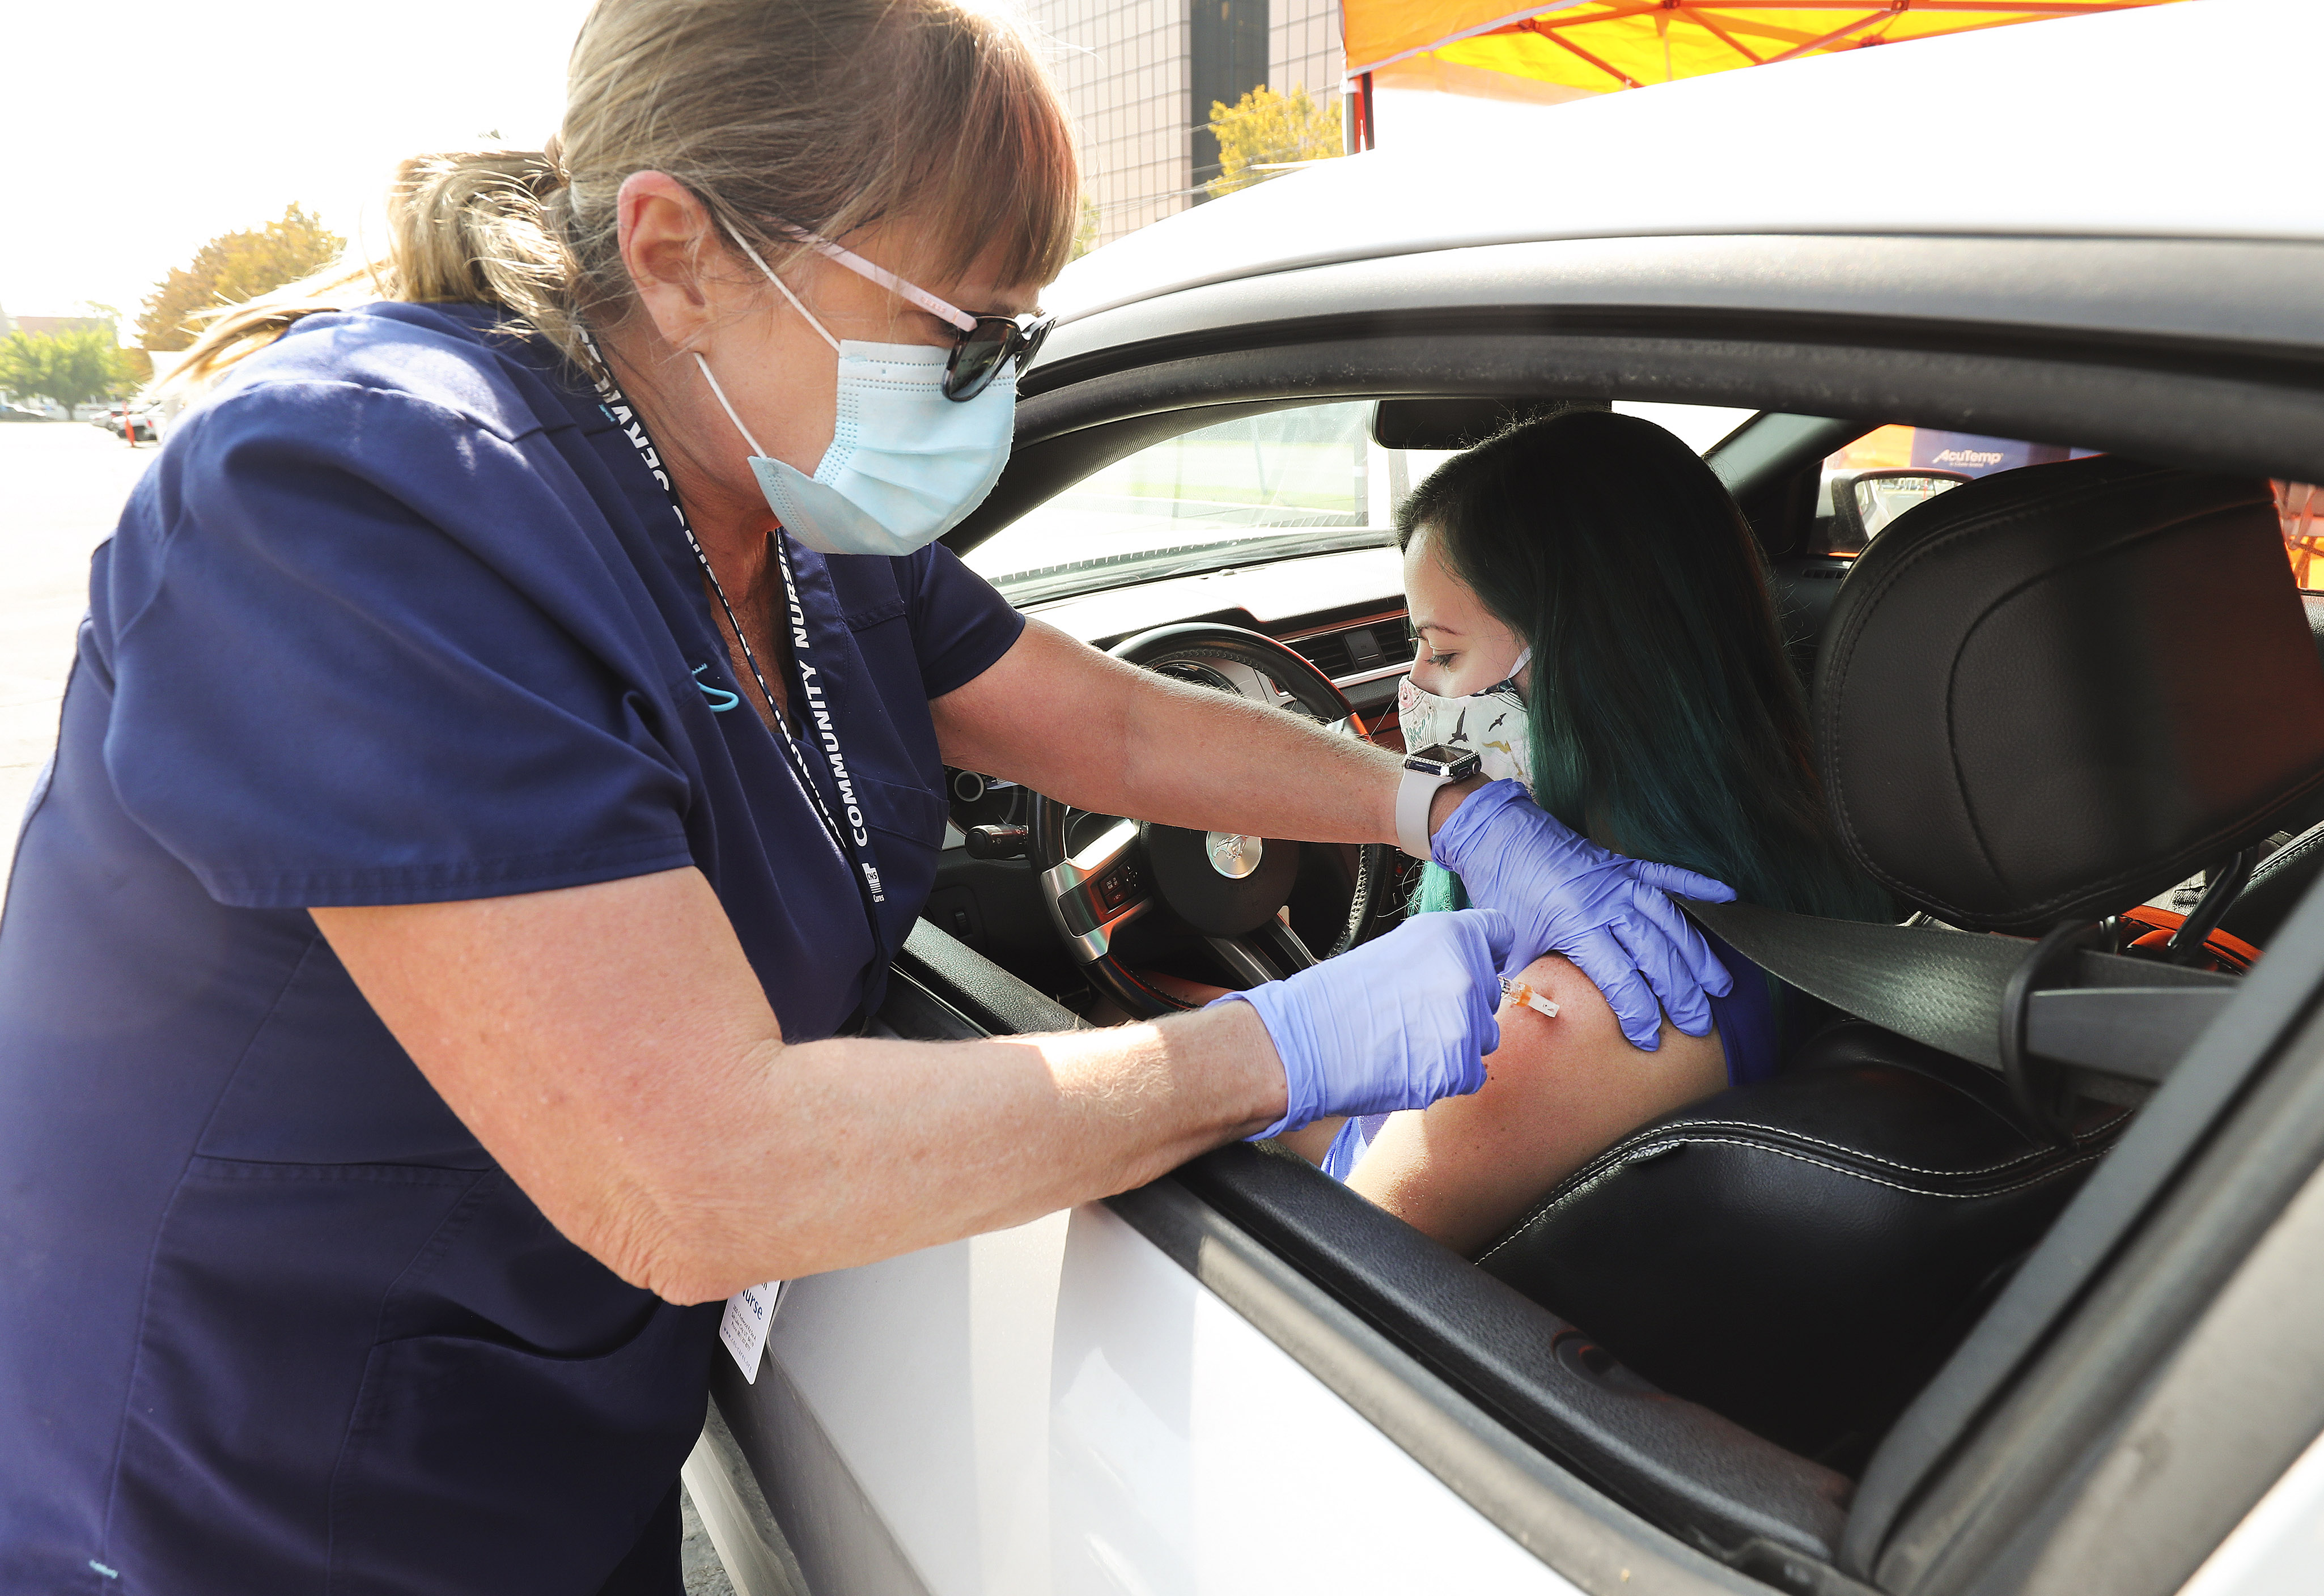 Registered nurse Kaylin Conant gives Kristina Boler a flu shot during a drive-thru clinic hosted by Community Nursing Services in Salt Lake City on Tuesday, Oct 6, 2020.